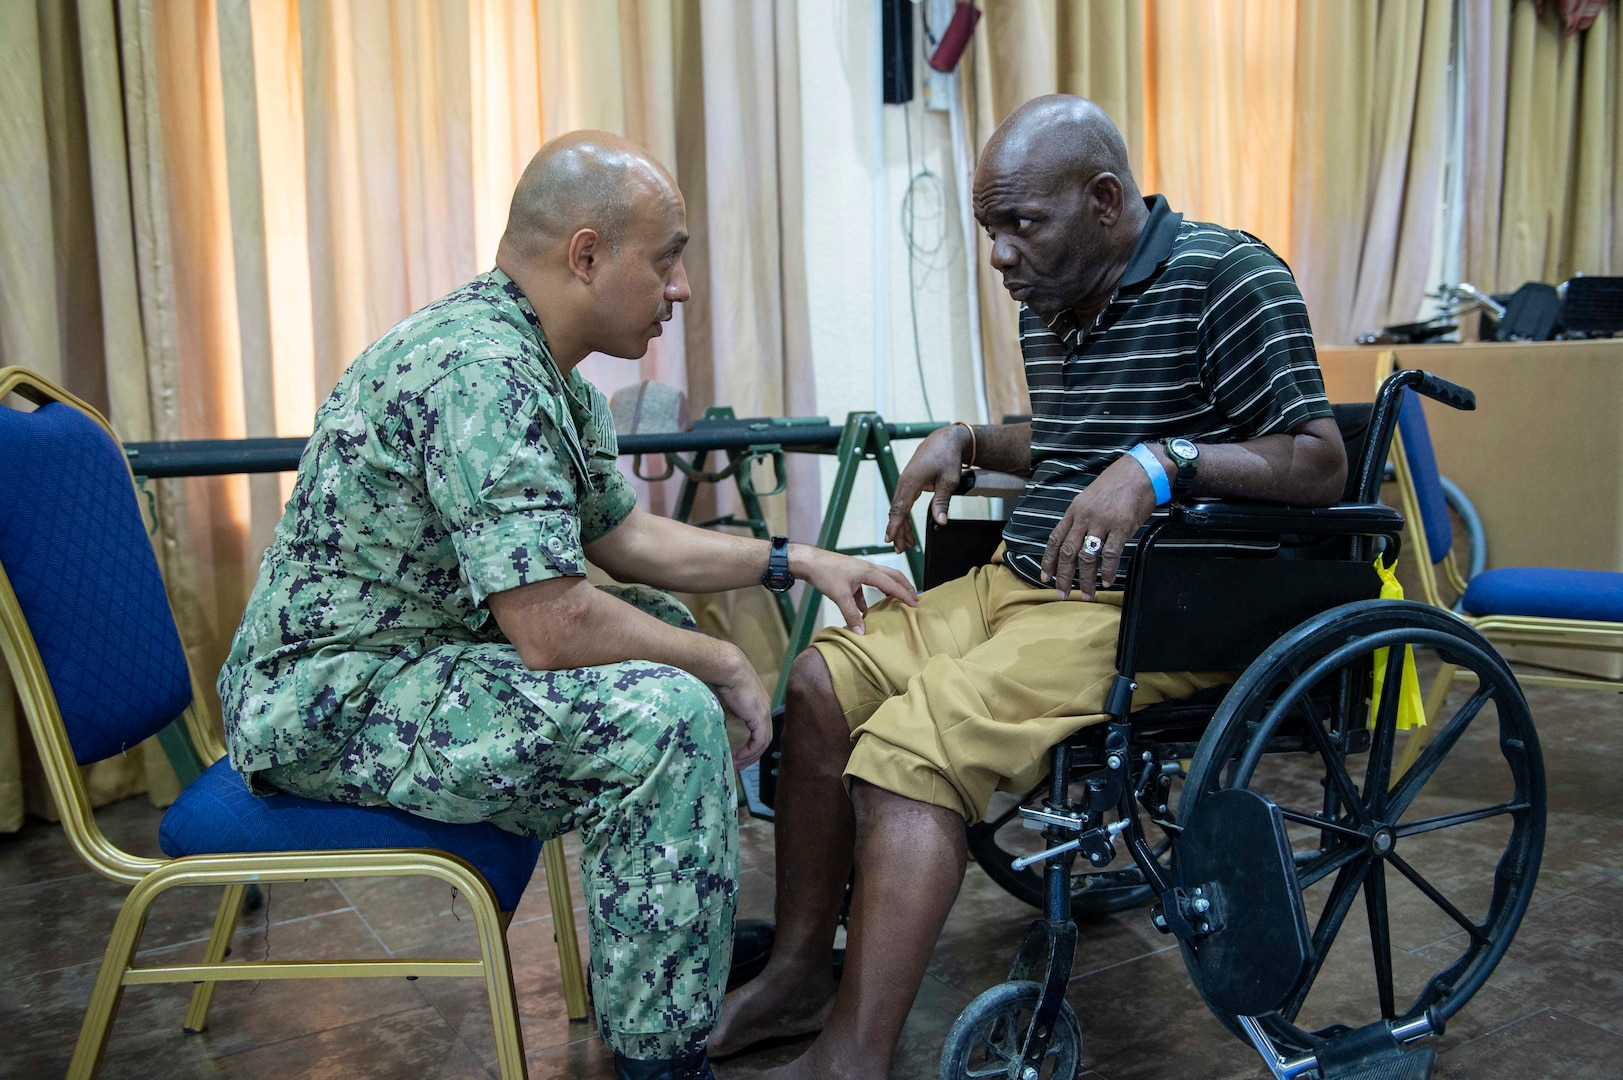 A physical therapist examines a Grenadian man's legs